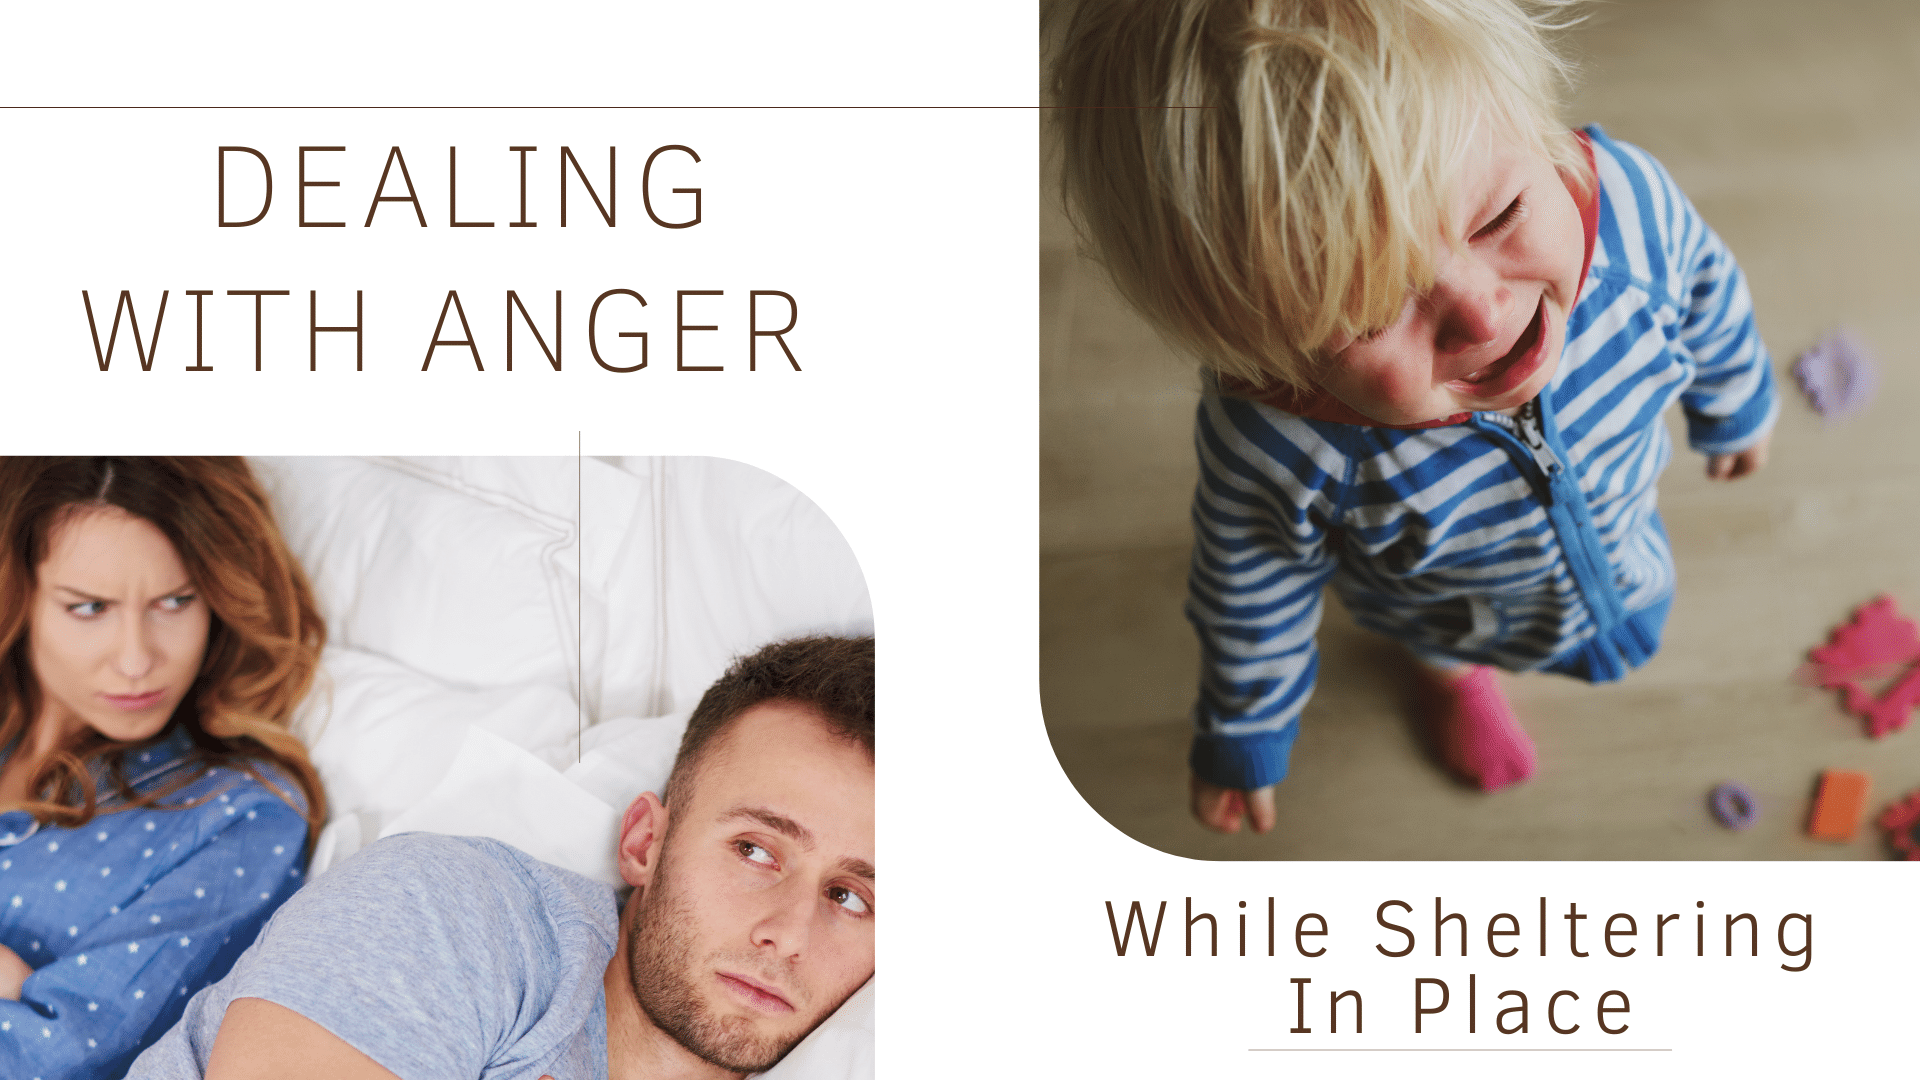 Dealing With Anger While Sheltering In Place